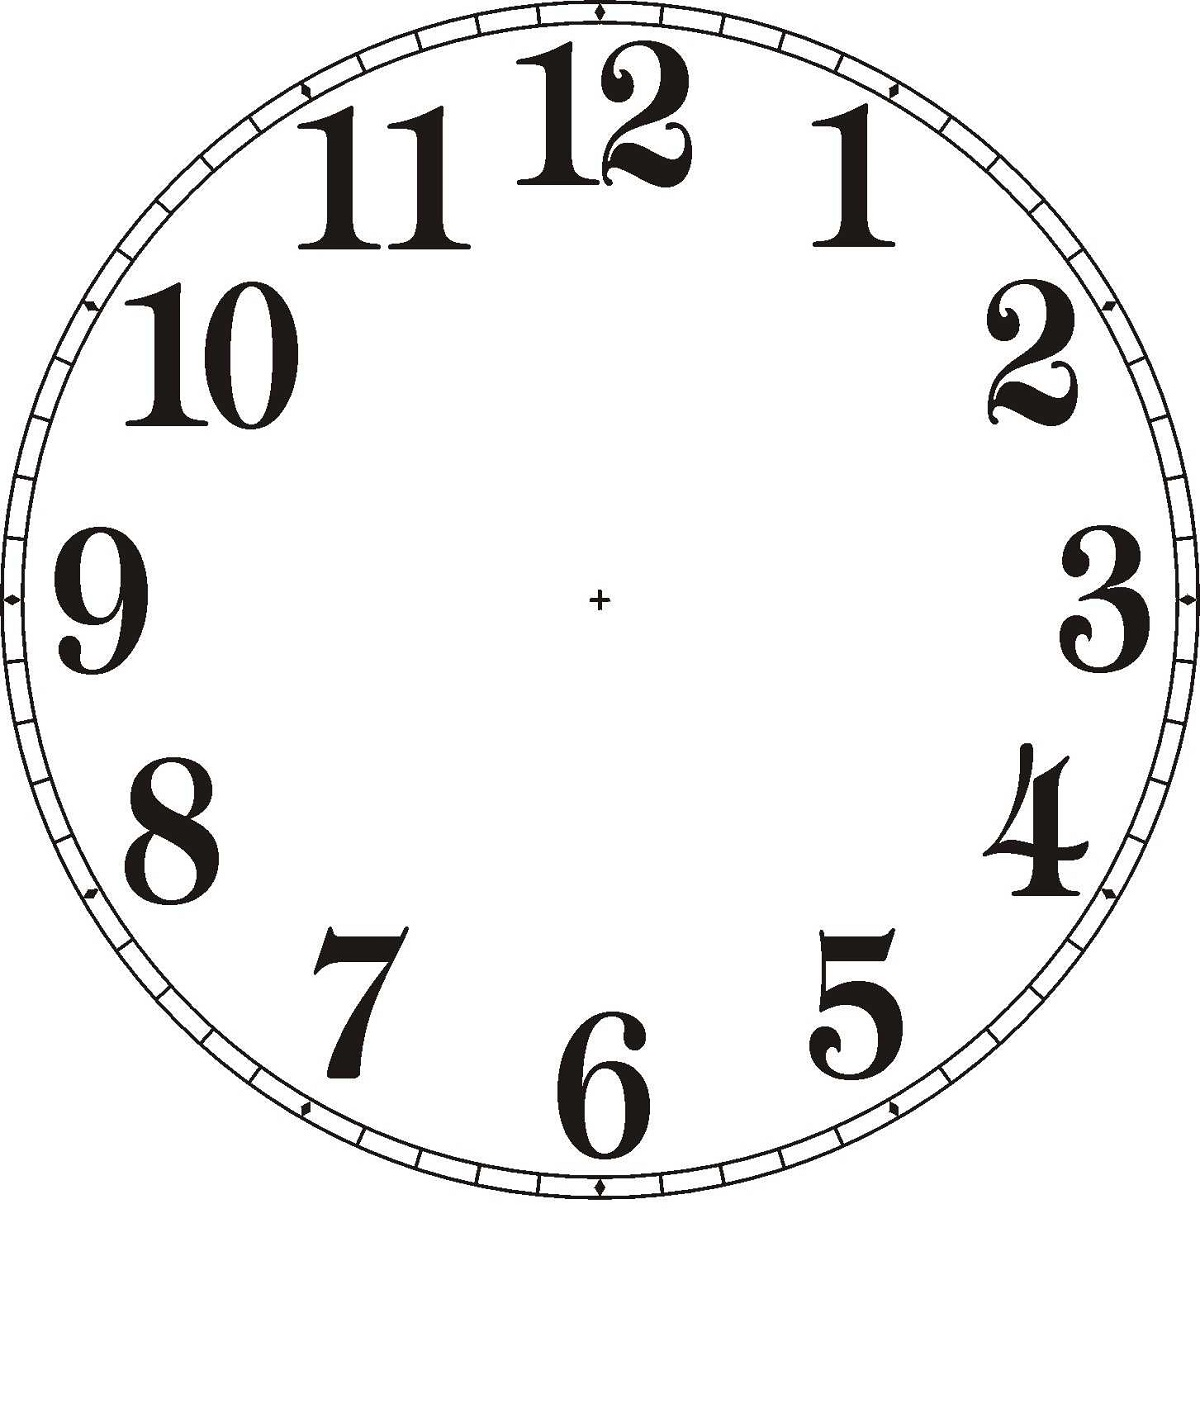 Clock Face Image Printable To Learn Telling Time Learning Printable